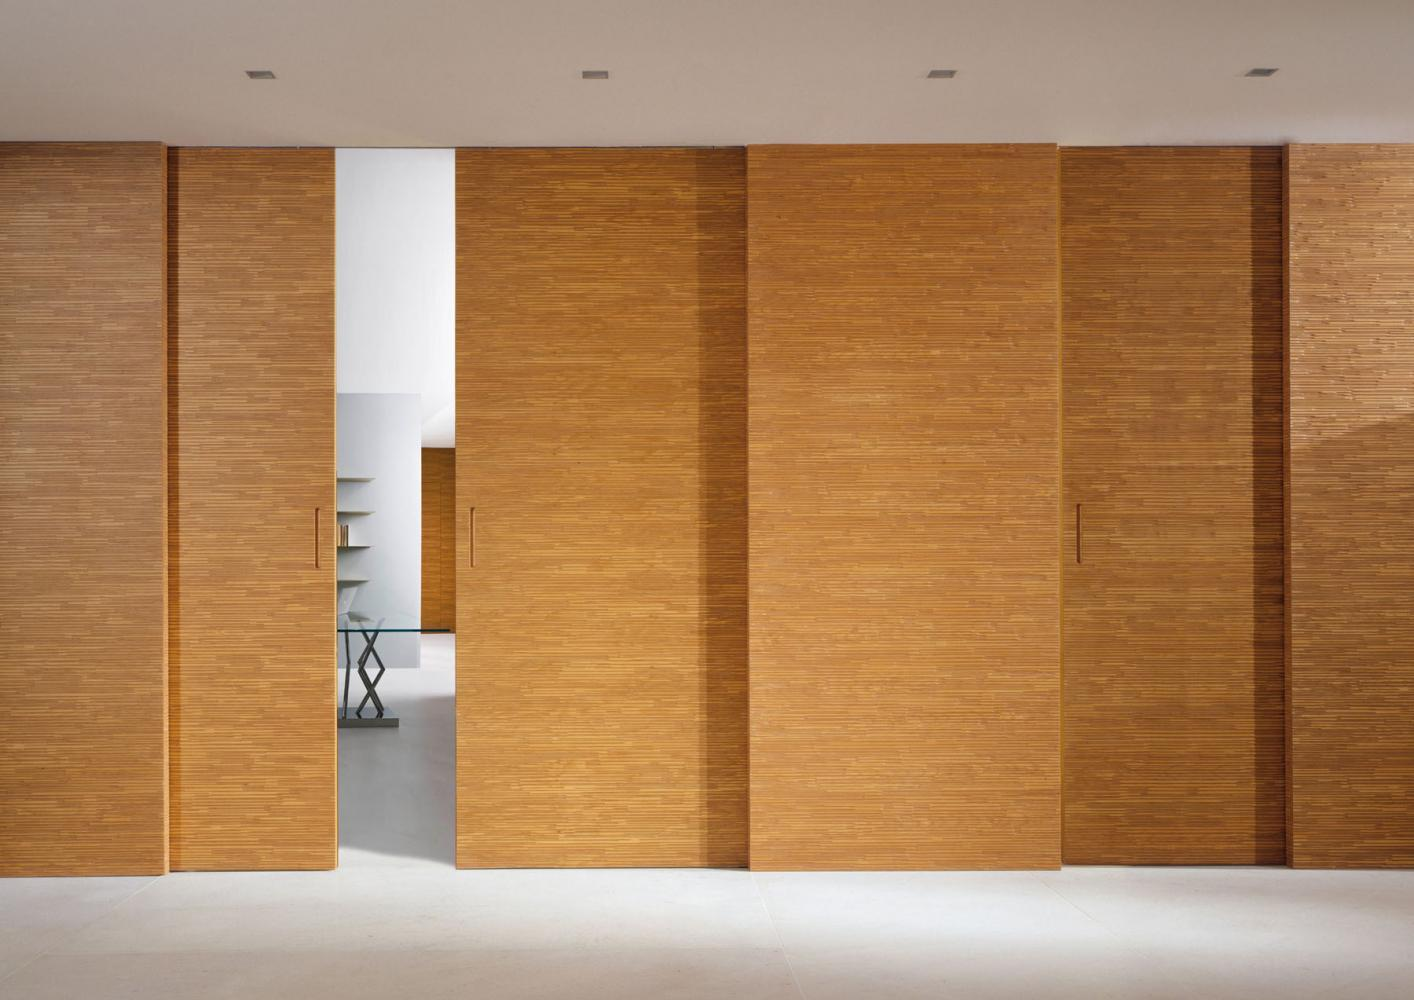 Merveilleux Decor Sliding Door, Carved On Both Sides With The Handle Hollowed Out In  The Door Thickness, Can Be Combined With Wall Panelling Of The Same  Collection.